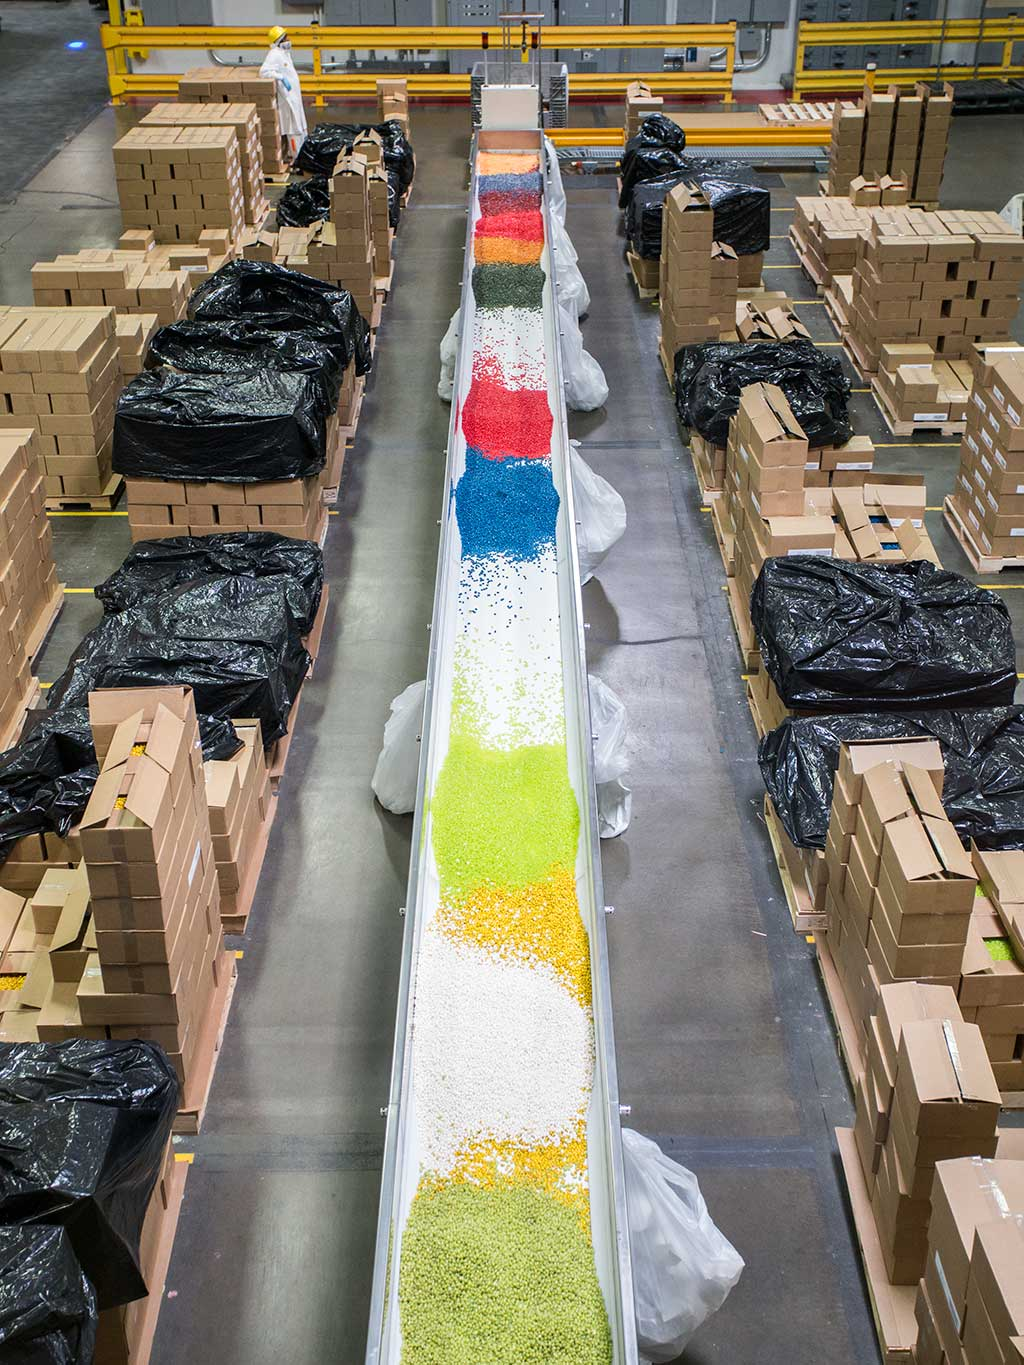 drive-swim-fly-jelly-belly-factory-tour-fairfield-california-conveyer-belt